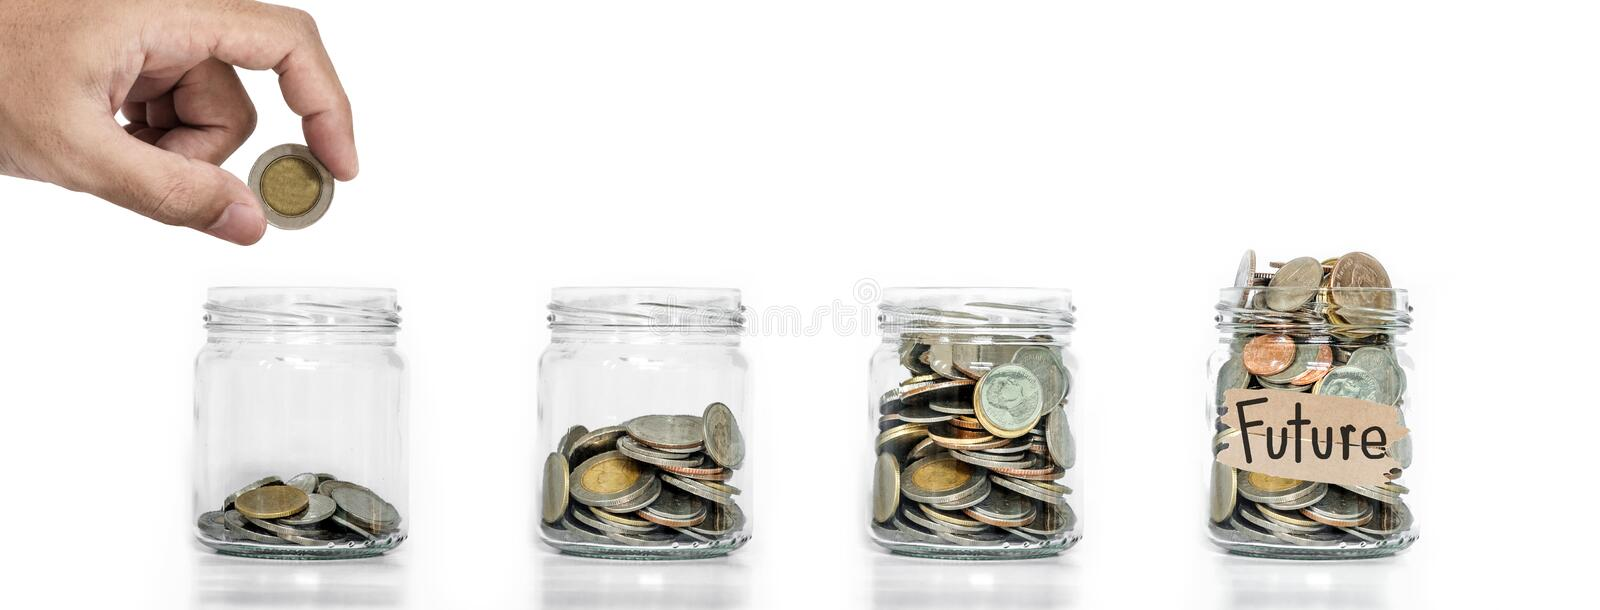 Money saving, Hand putting coin in glass jar with coins inside growing up, on white background, concept of saving money for future stock photography